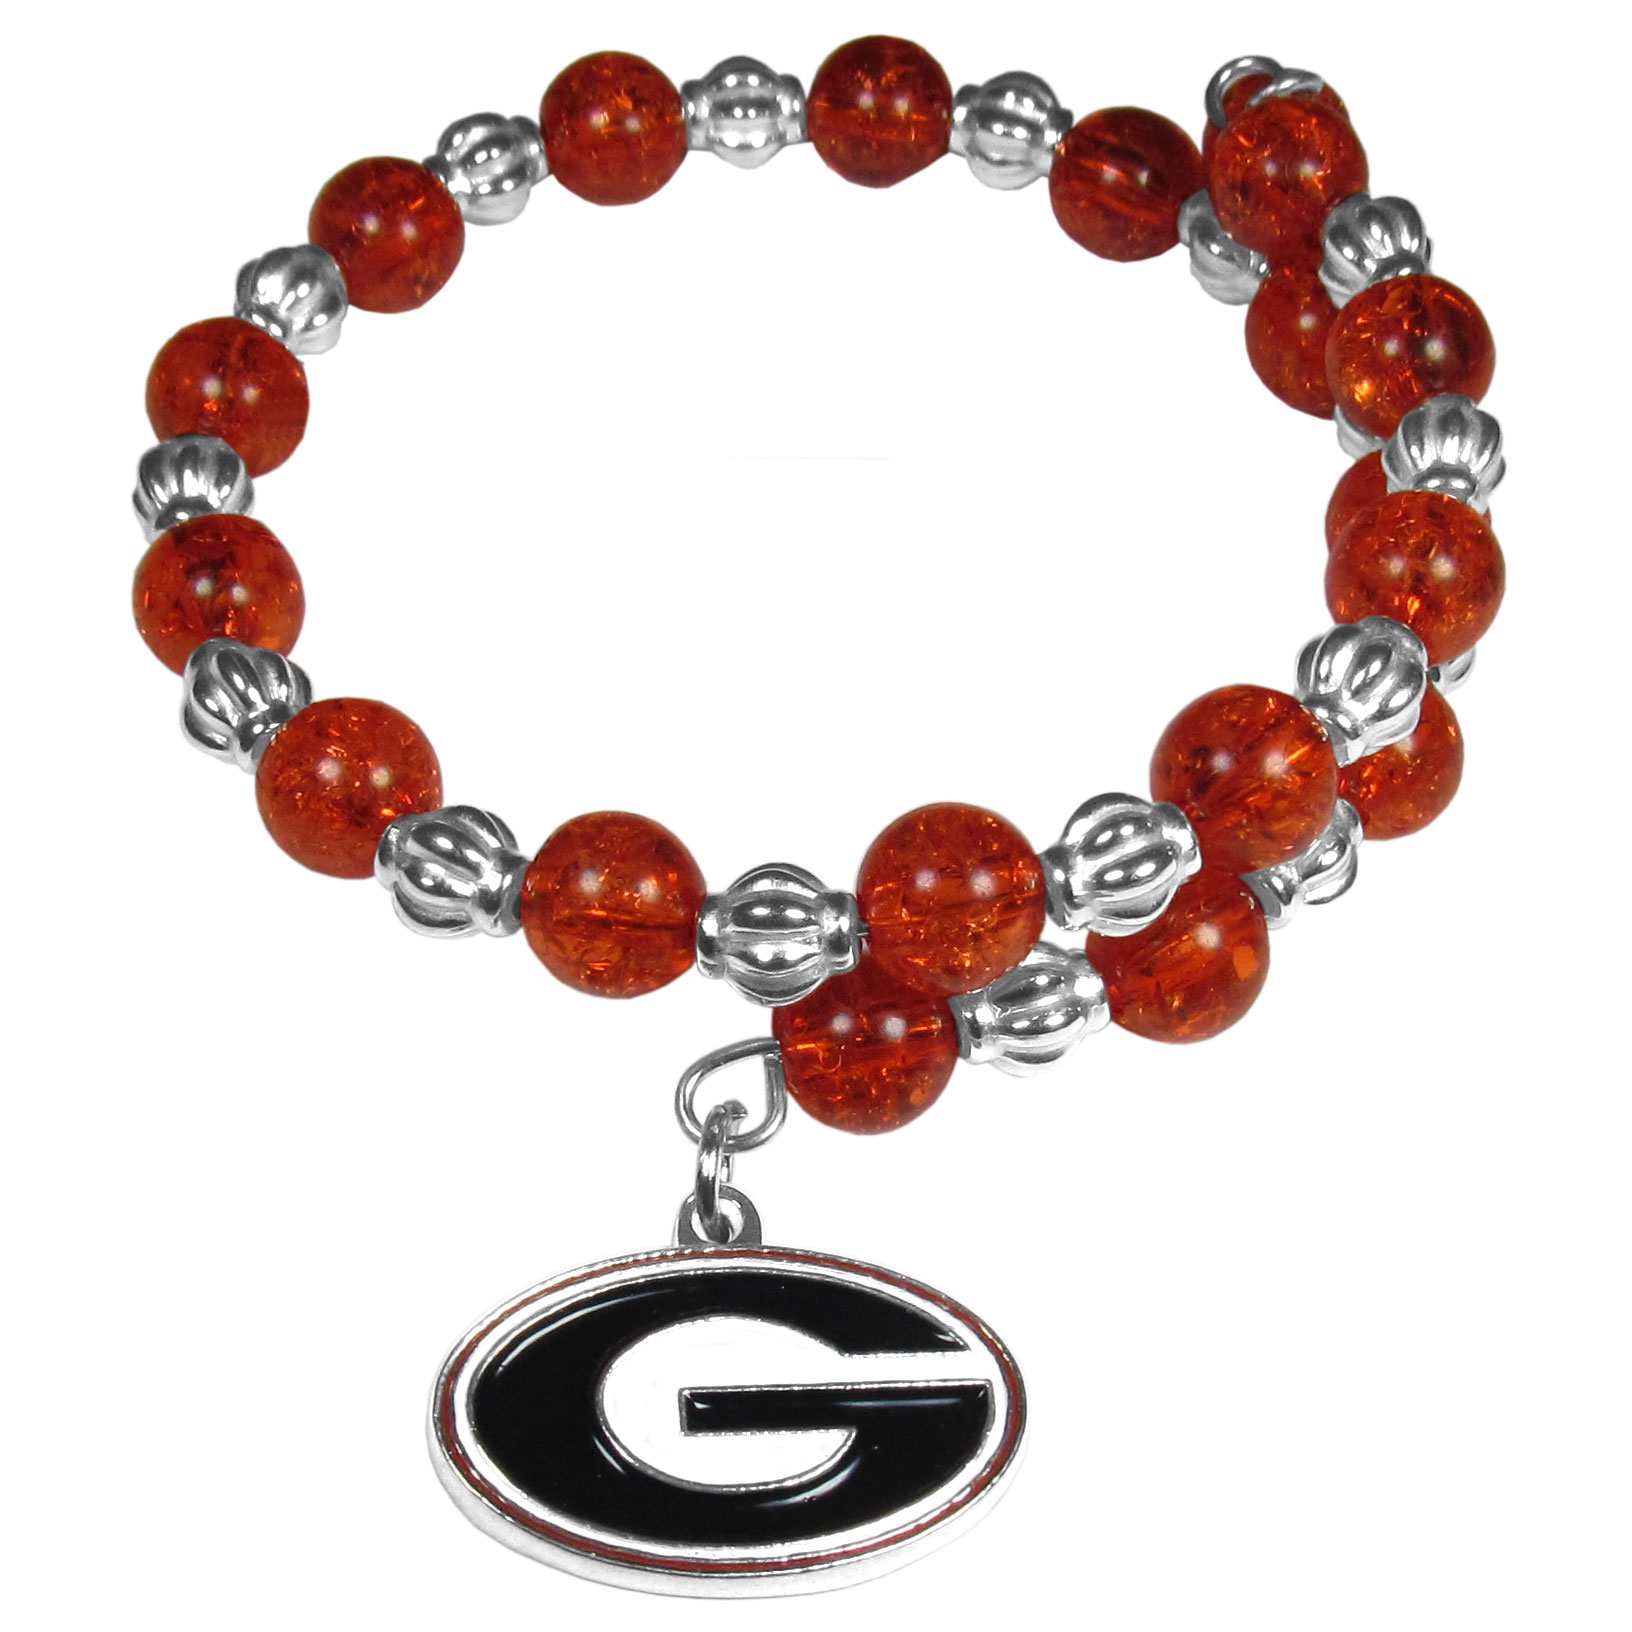 Georgia Bulldogs Bead Memory Wire Bracelet - Our Georgia Bulldogs memory wire bead bracelet is trendy way to show off your love of the game. The double wrap bracelet is completely covered in 7.5 mm crystals that are broken up with silvertoned beads creating a designer look with a sporty twist. The bracelet features a fully cast, metal team charm that has expertly enameled team colors. This fashion jewelry piece is a must-have for the die-hard fan that chic look that can dress up any outfit.